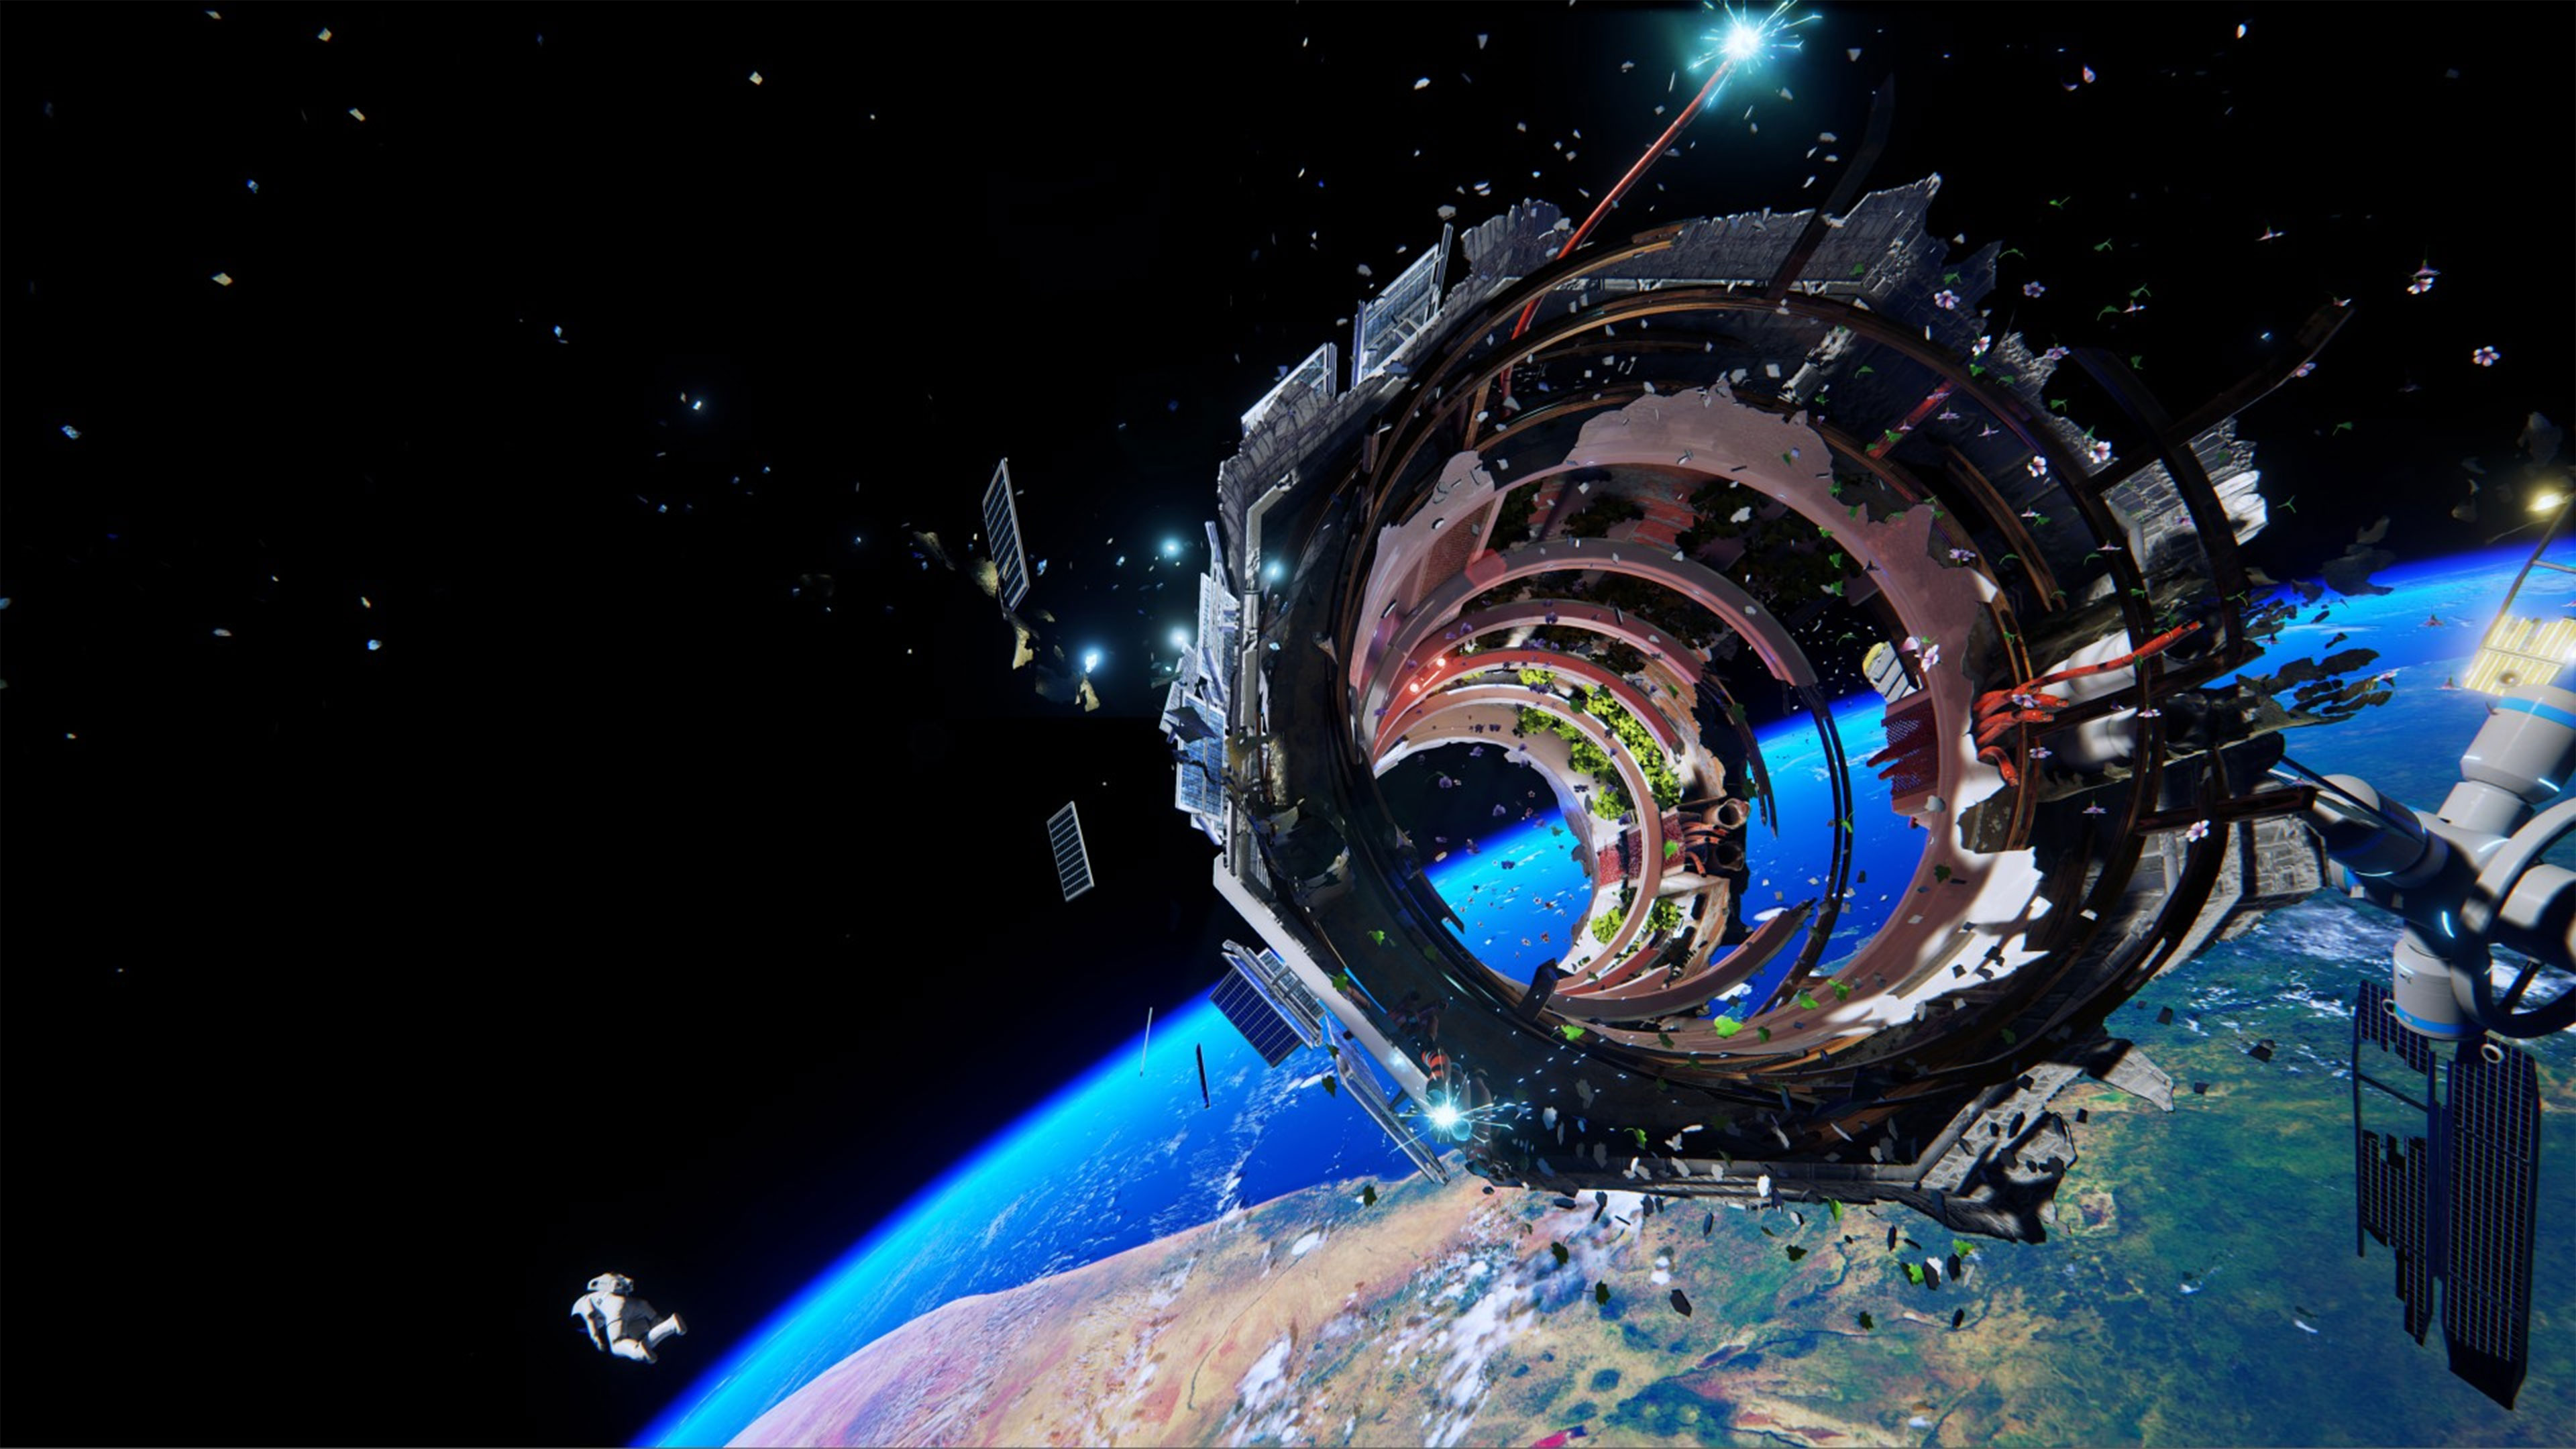 adr1ft wallpapers in ultra hd 4k gameranx